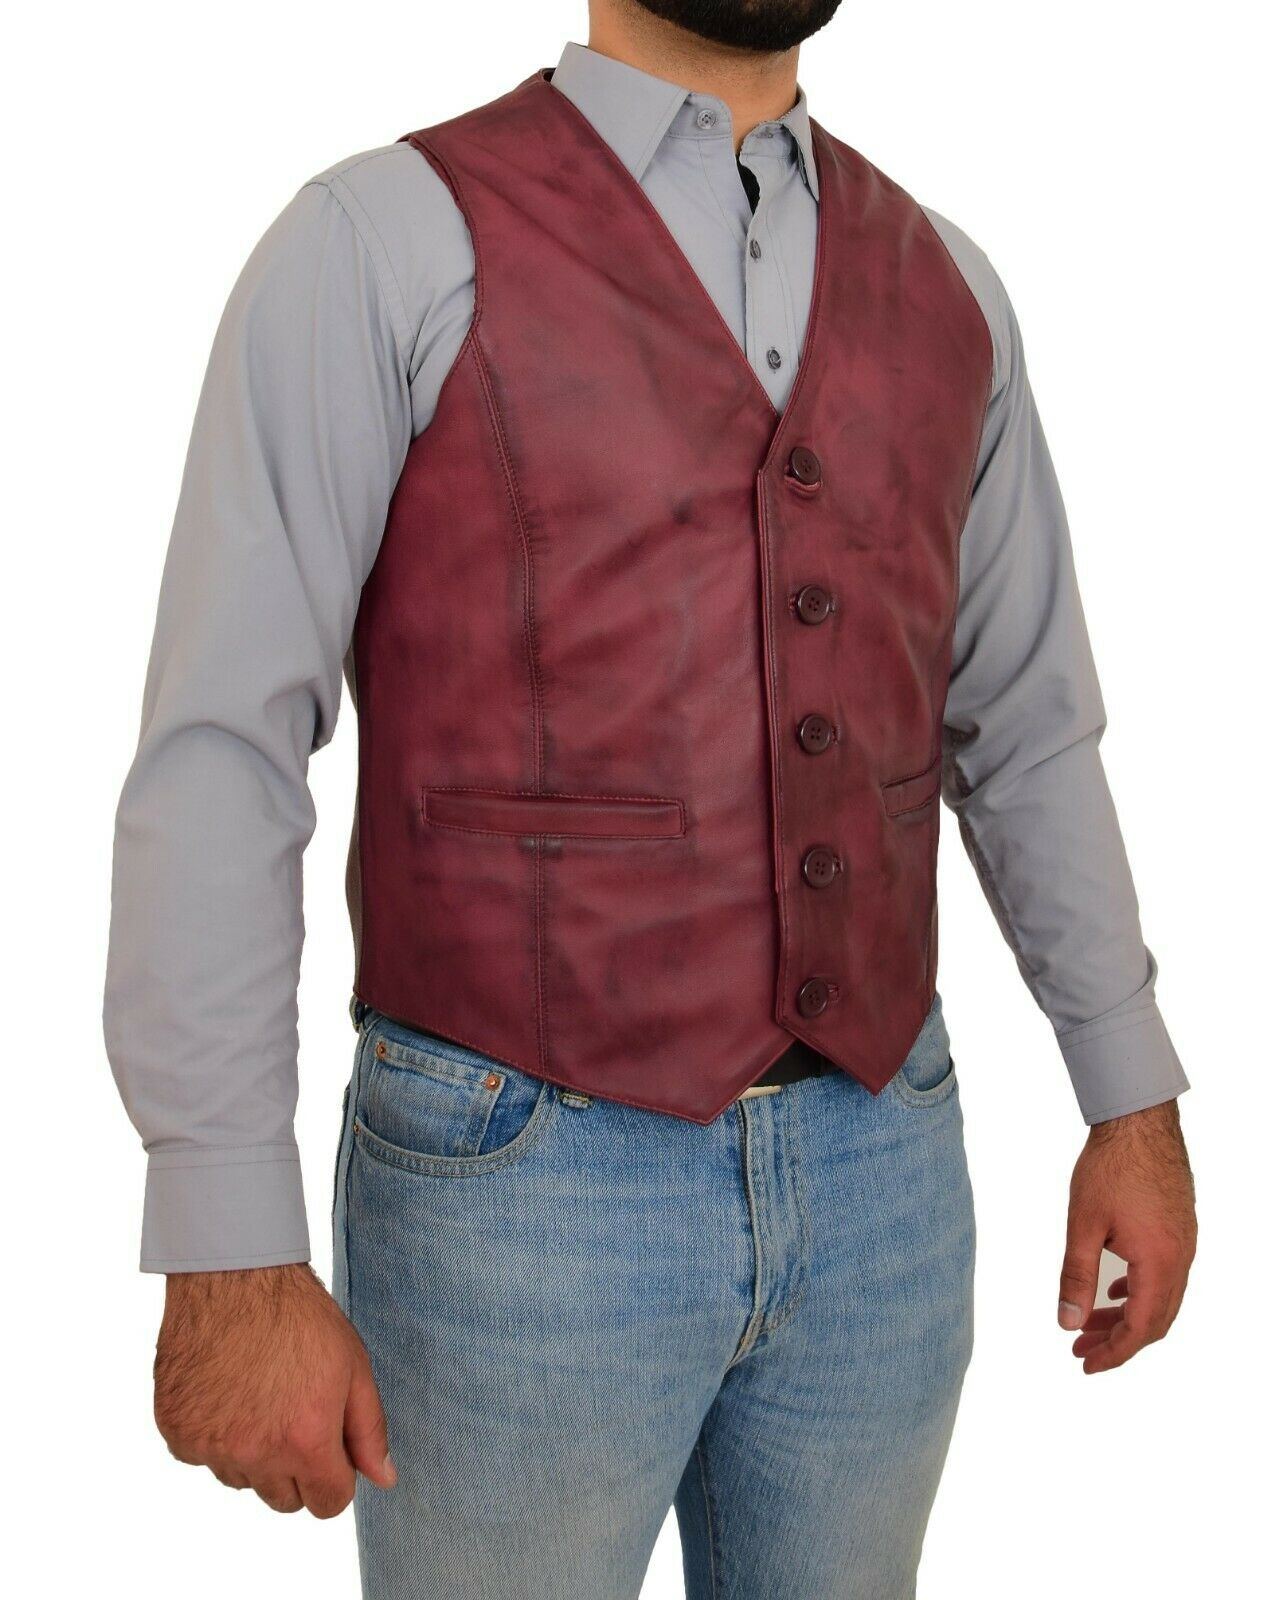 herren Full Burgundy leder Waistcoat Traditional Smart Gilet Sleeveless Vest NEW